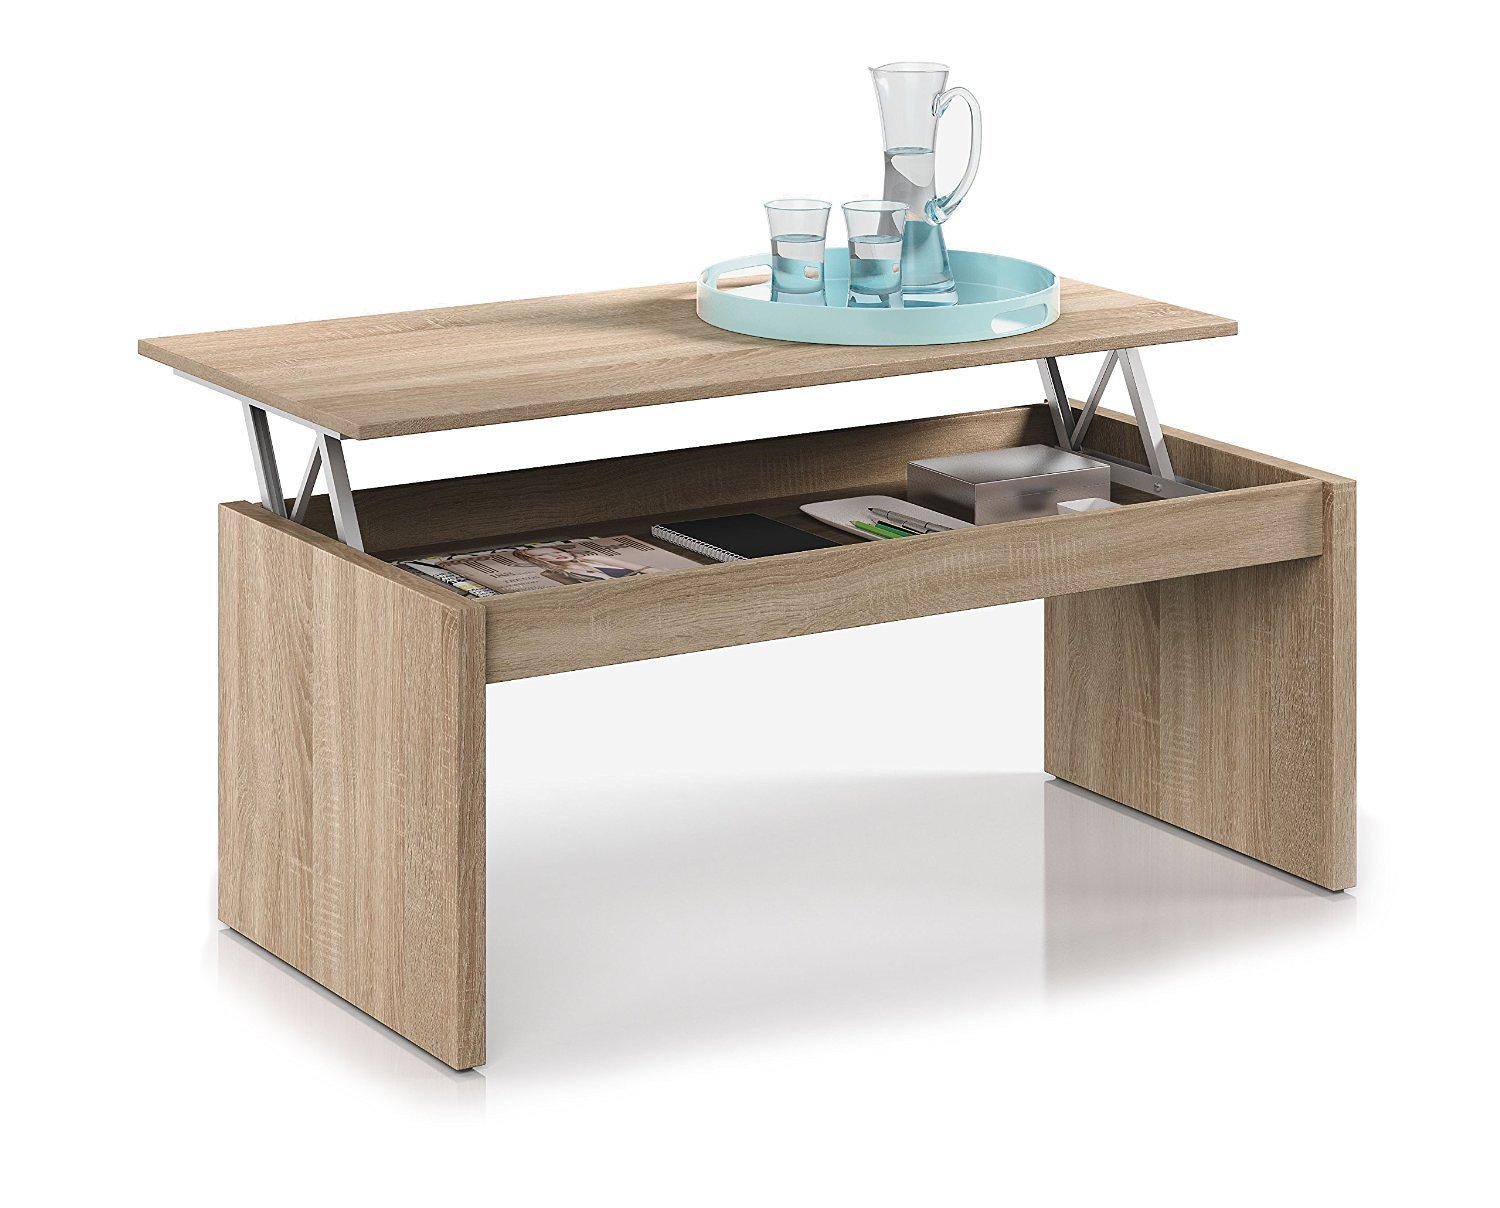 Fabulous habitdesign f table basse chne naturel avec for Conforama table basse relevable